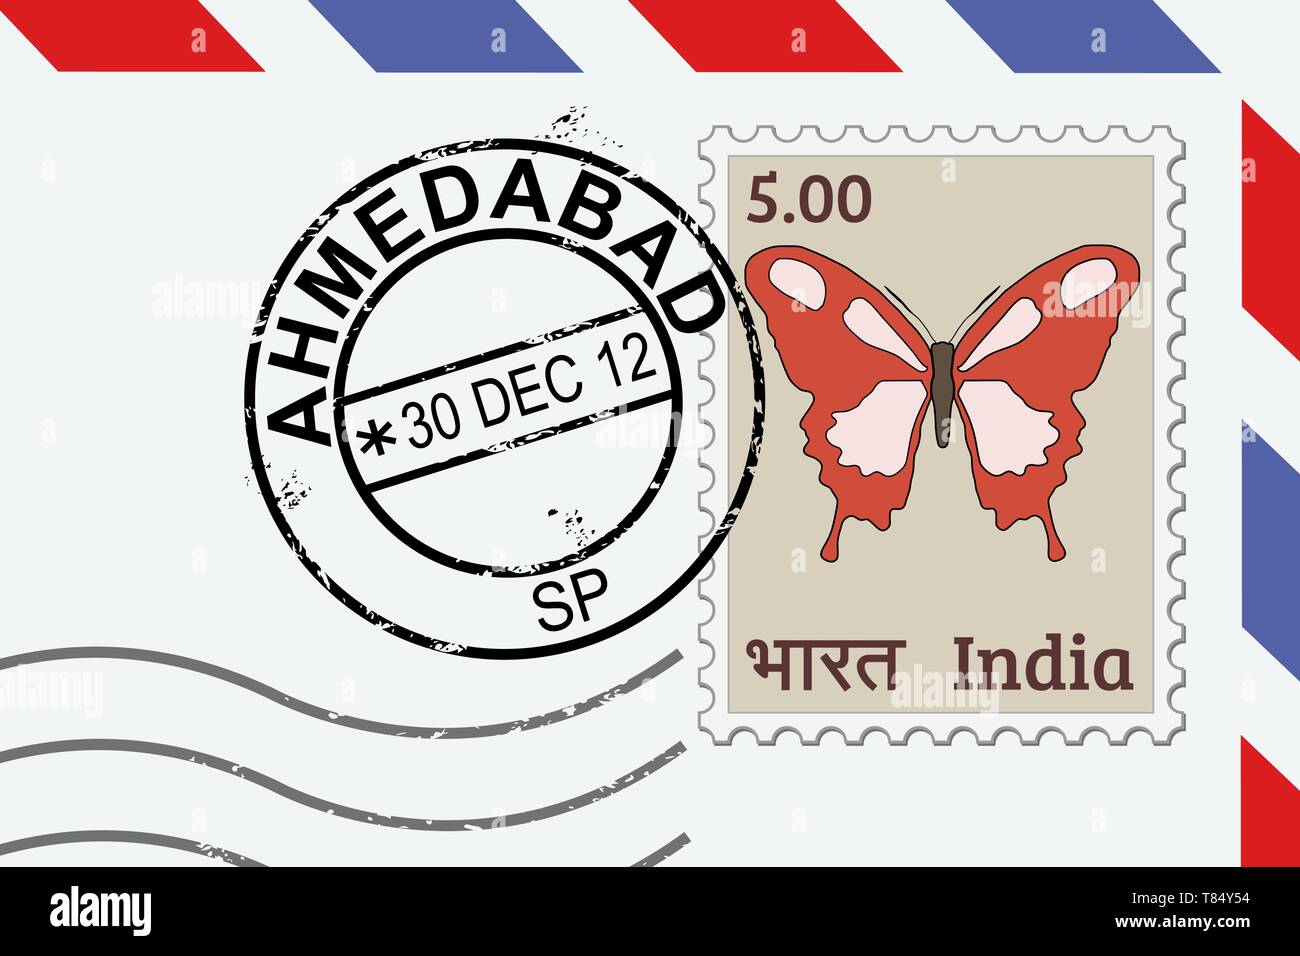 Ahmedabad postage stamp - India post stamp on a lettern. - Stock Vector